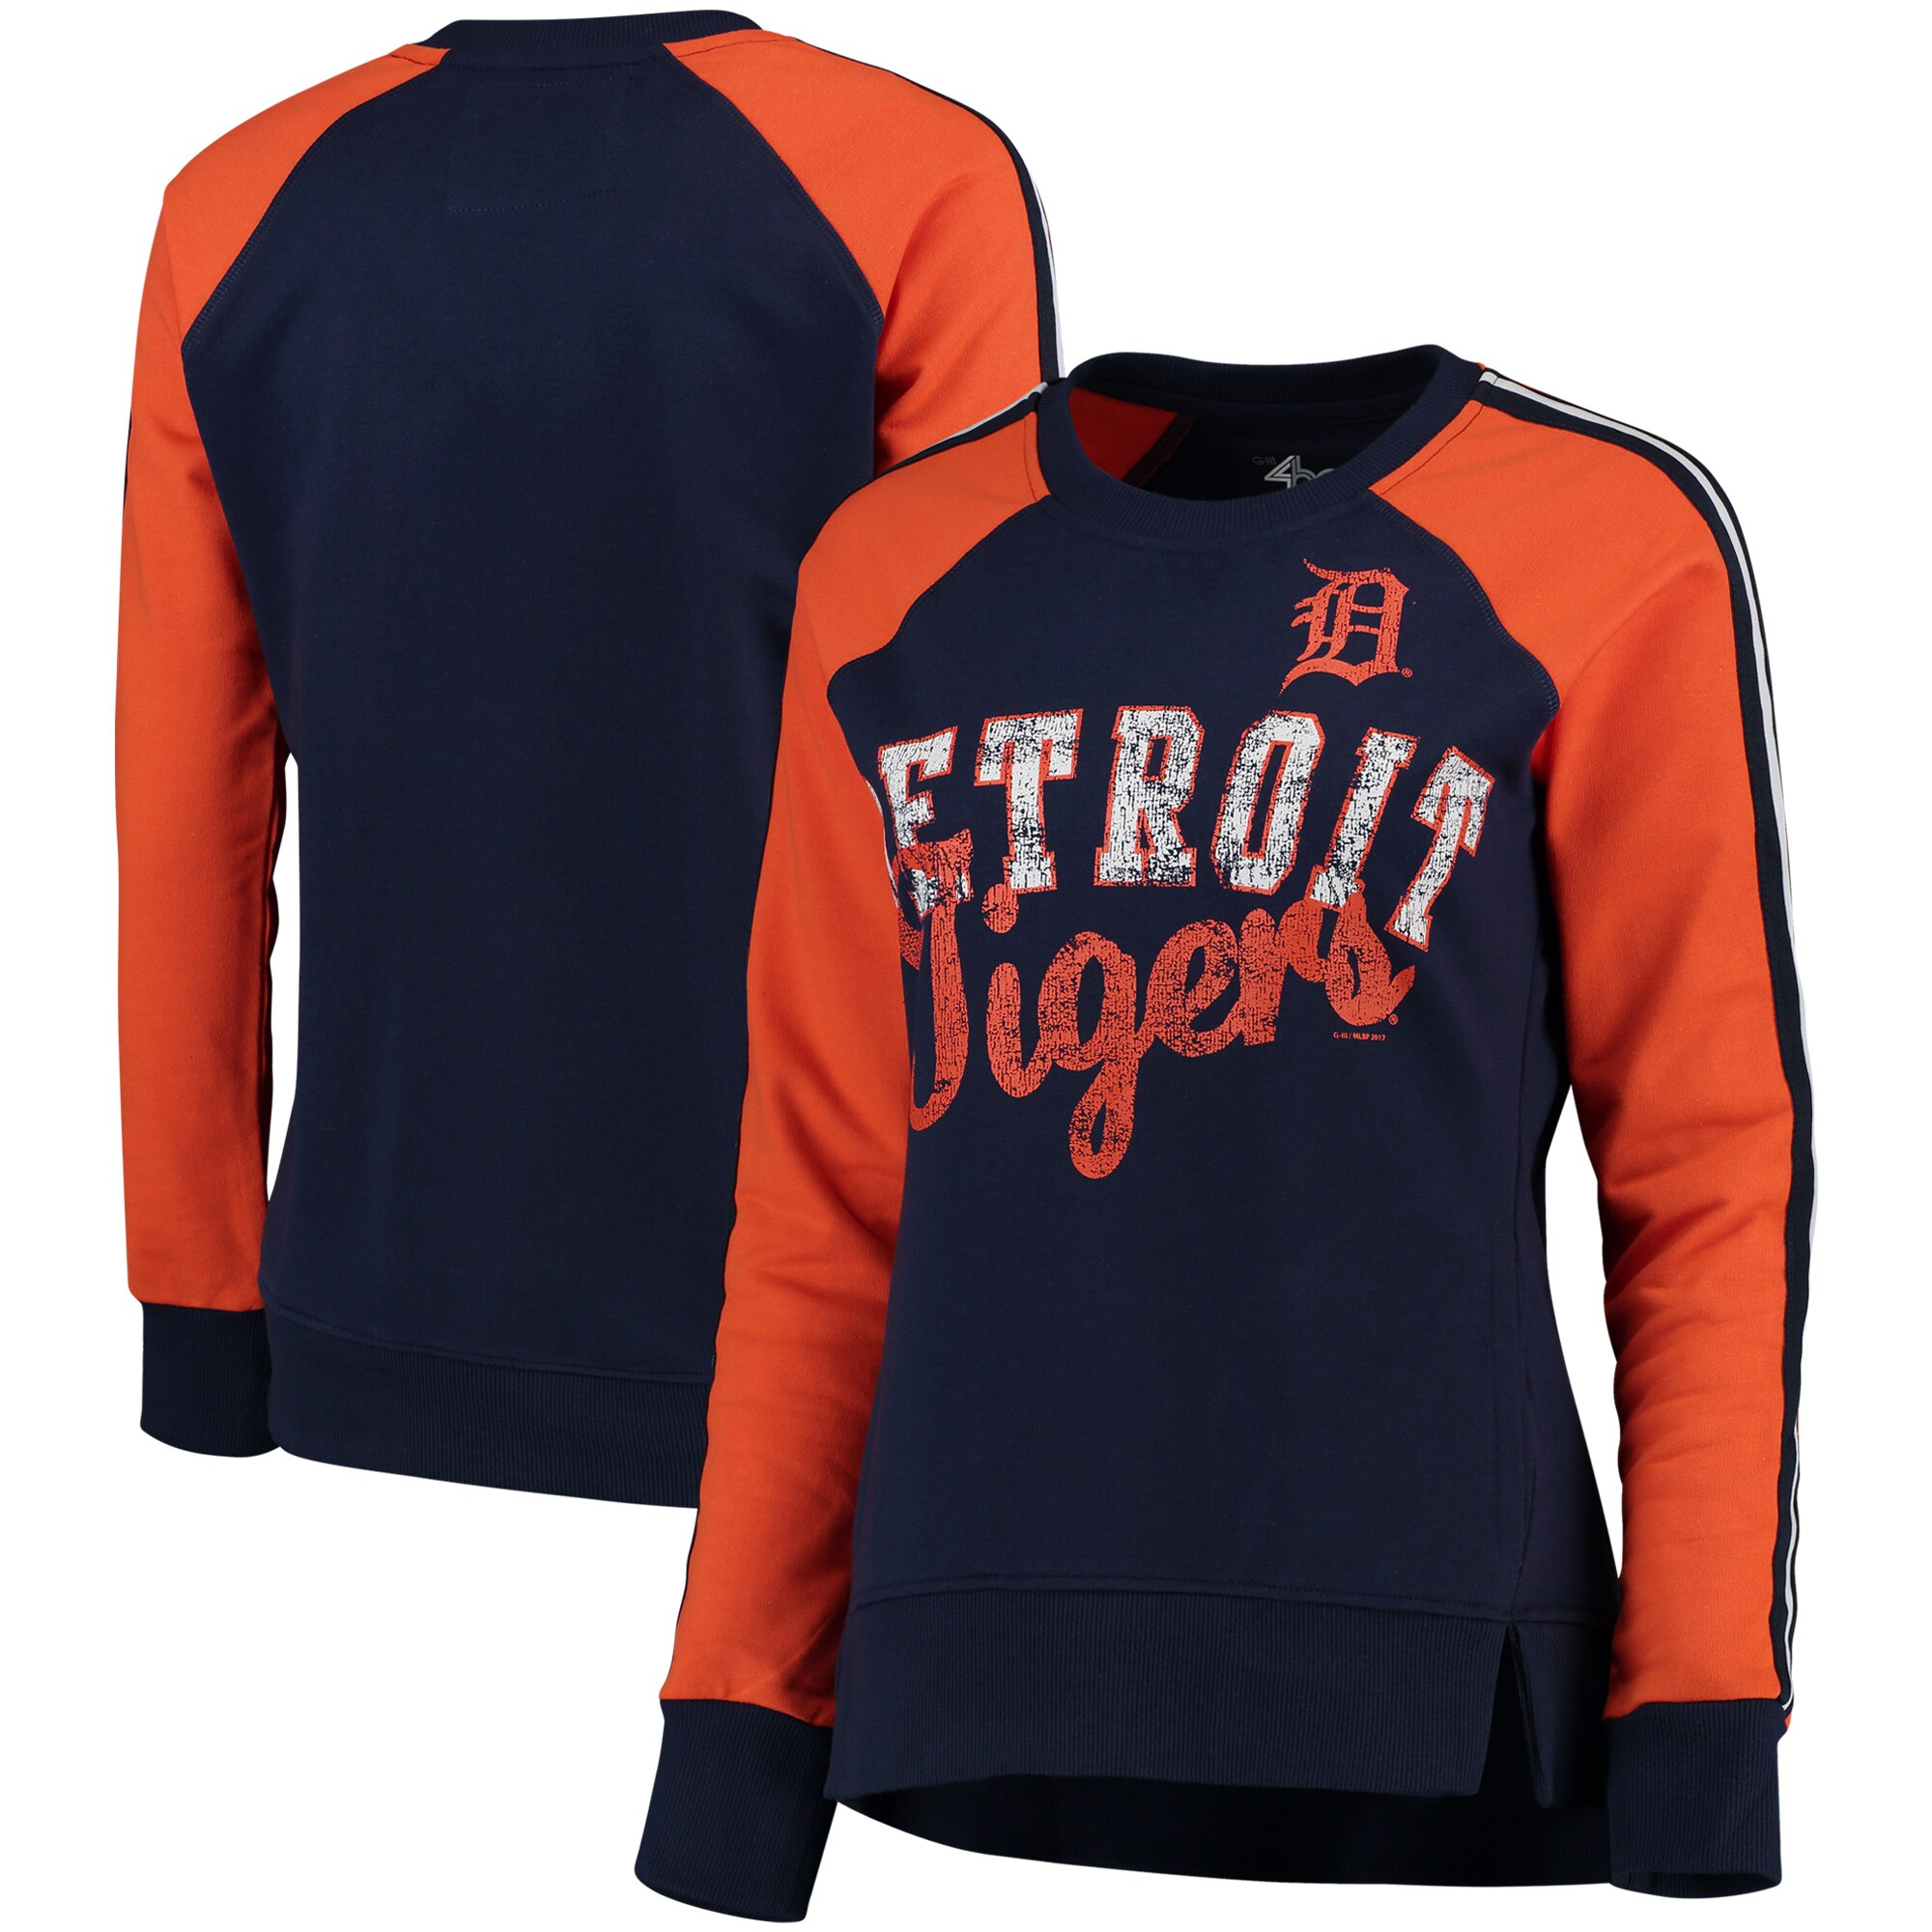 Detroit Tigers G-III 4Her by Carl Banks Women's Perfect Pitch Pullover Sweatshirt - Navy/Orange